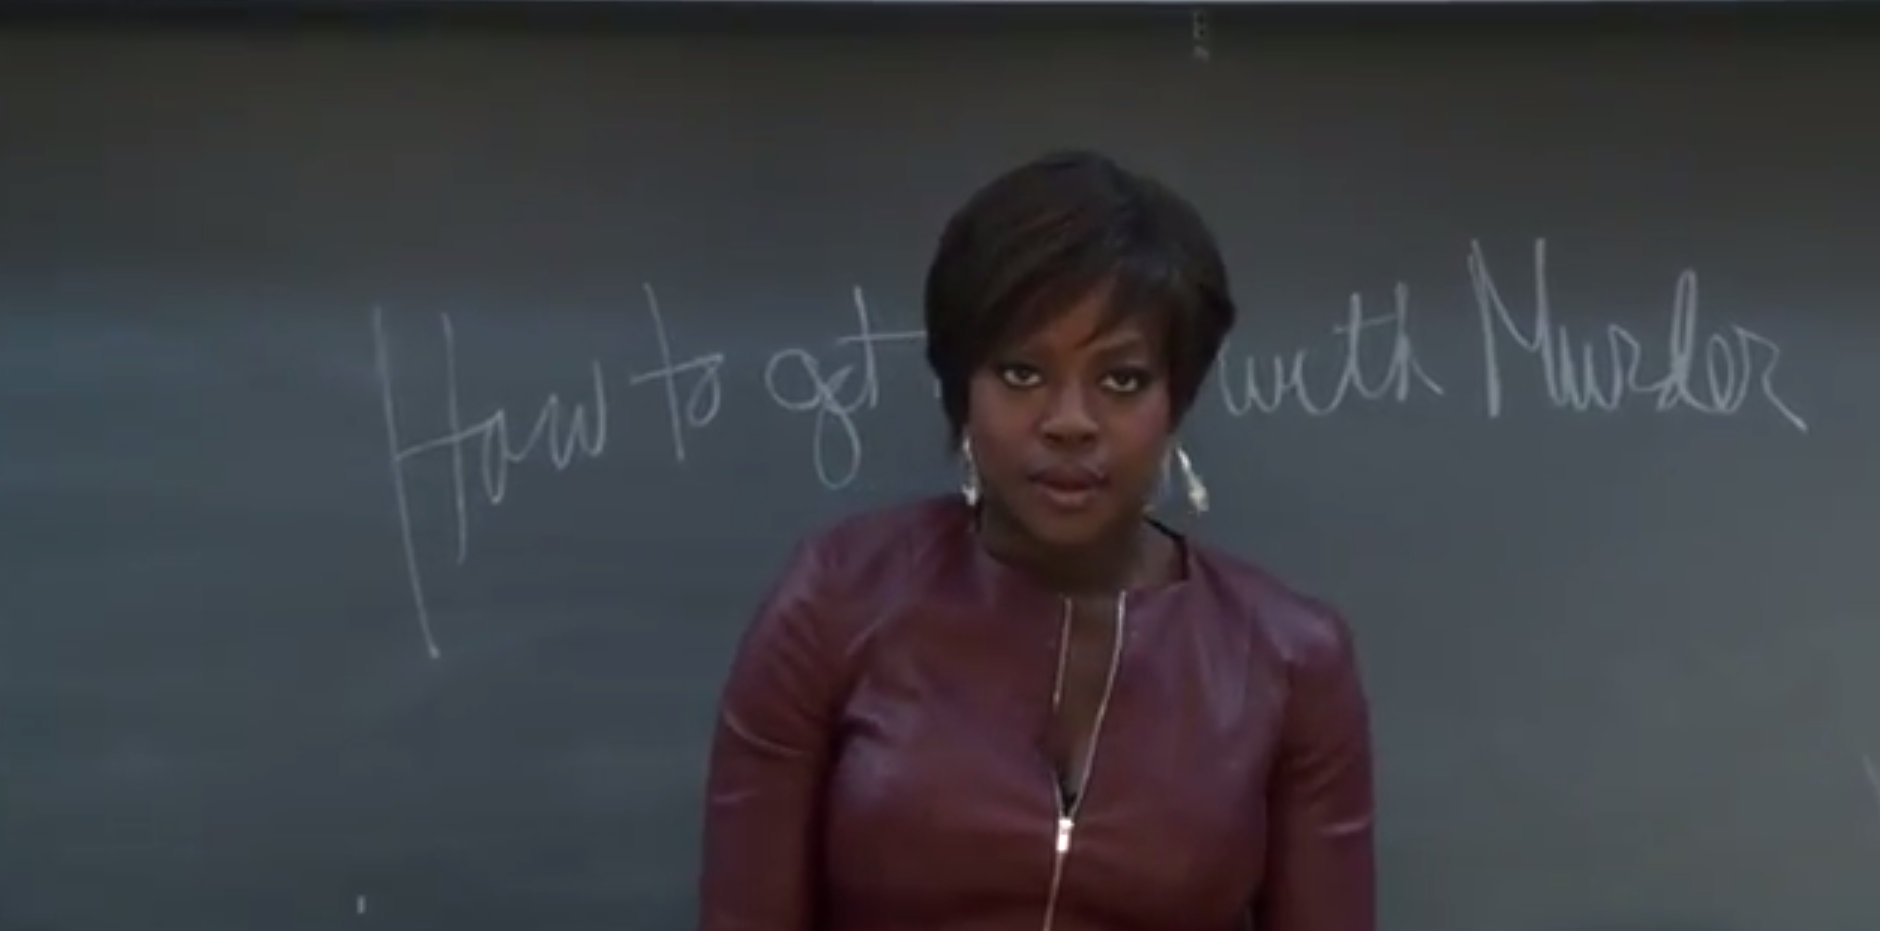 viola davis how to get away with murder - How to get away with murder